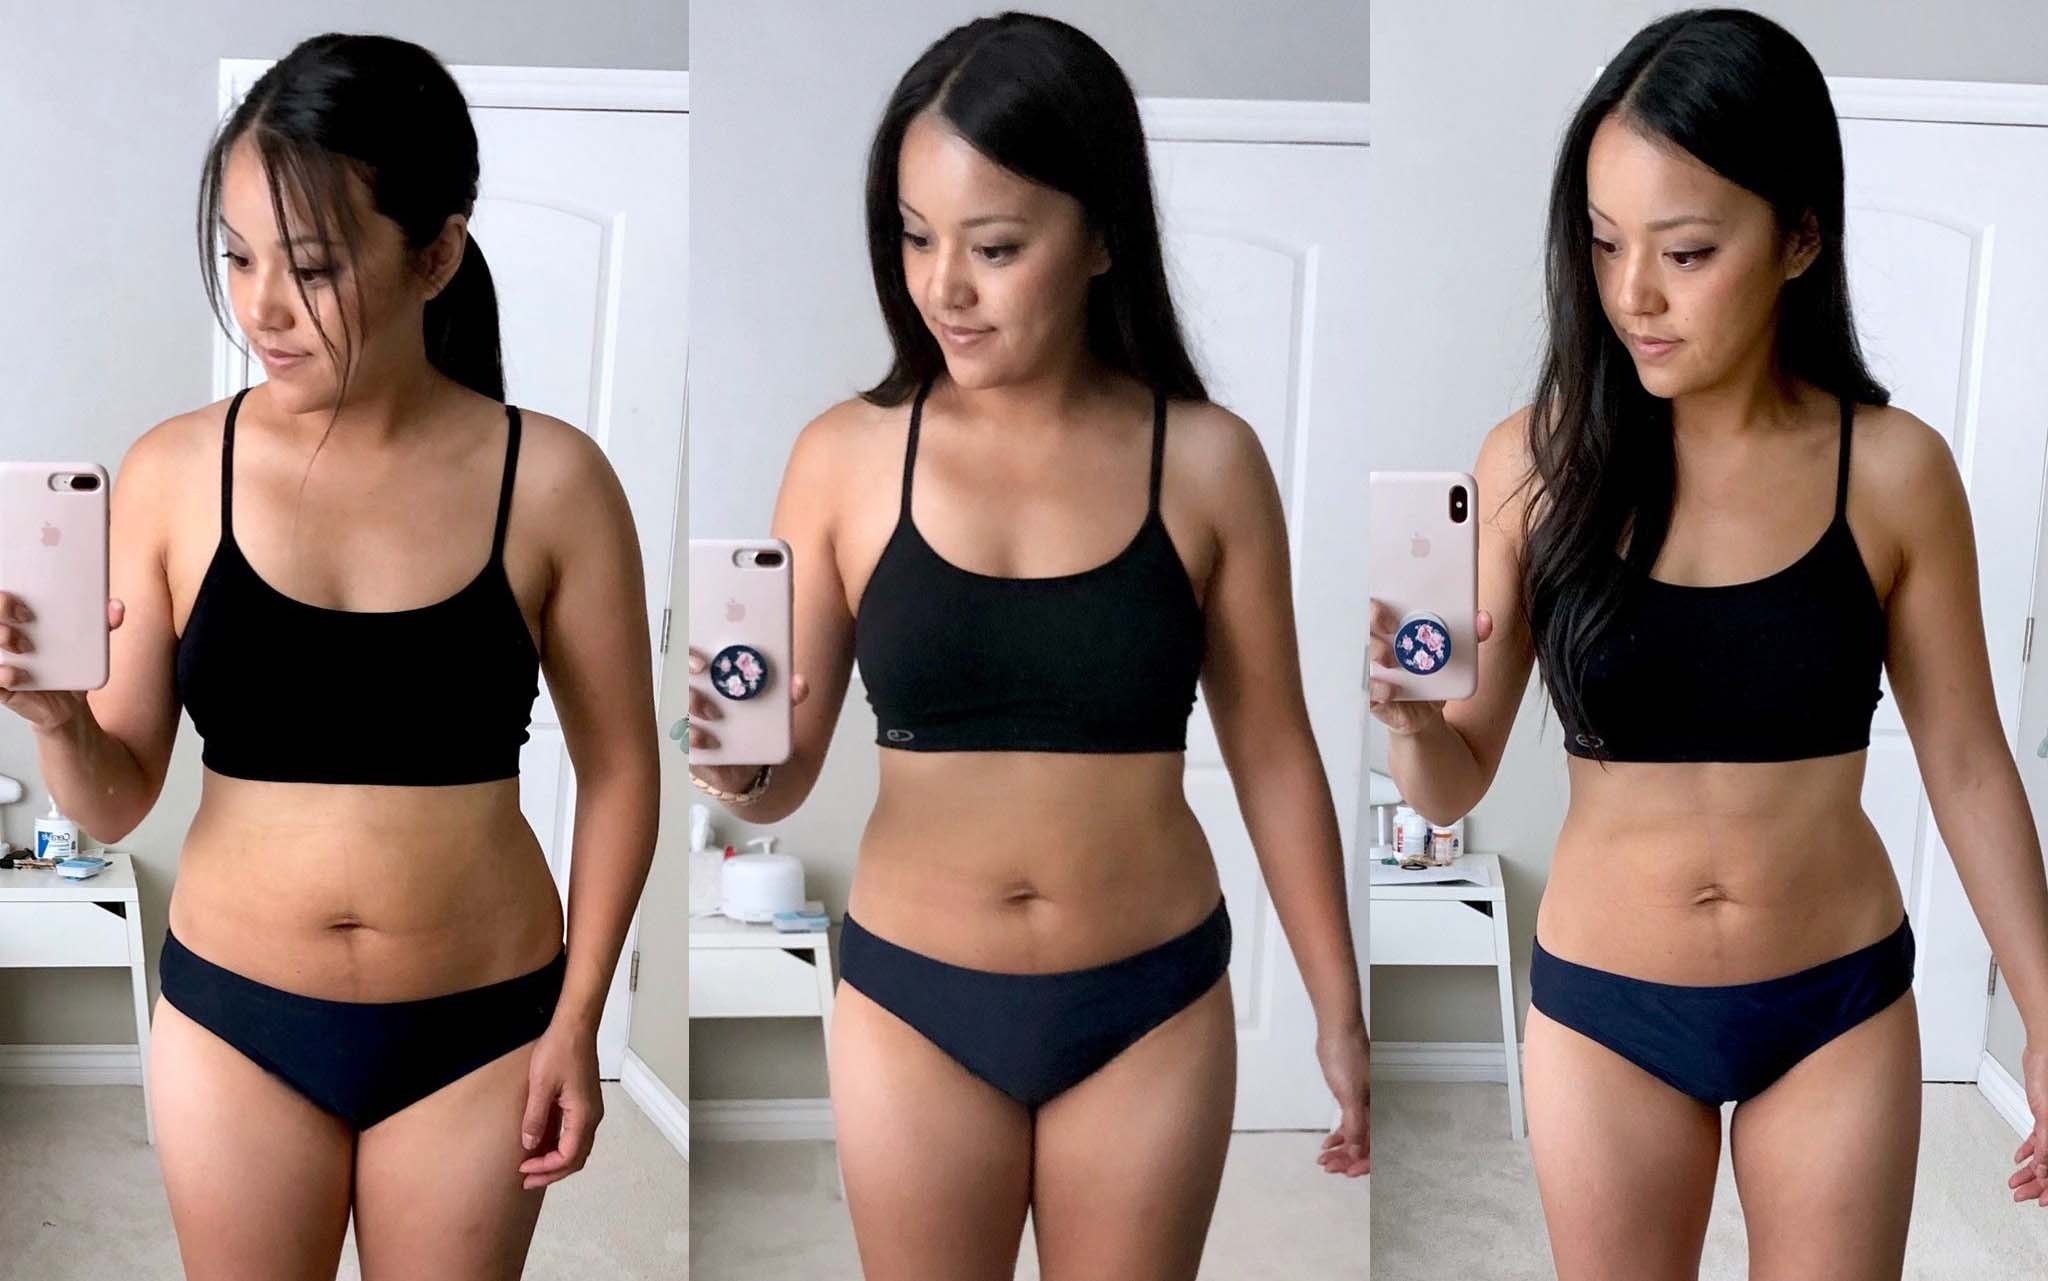 How can a girl lose inches from her waist and get flat abs? - Quora